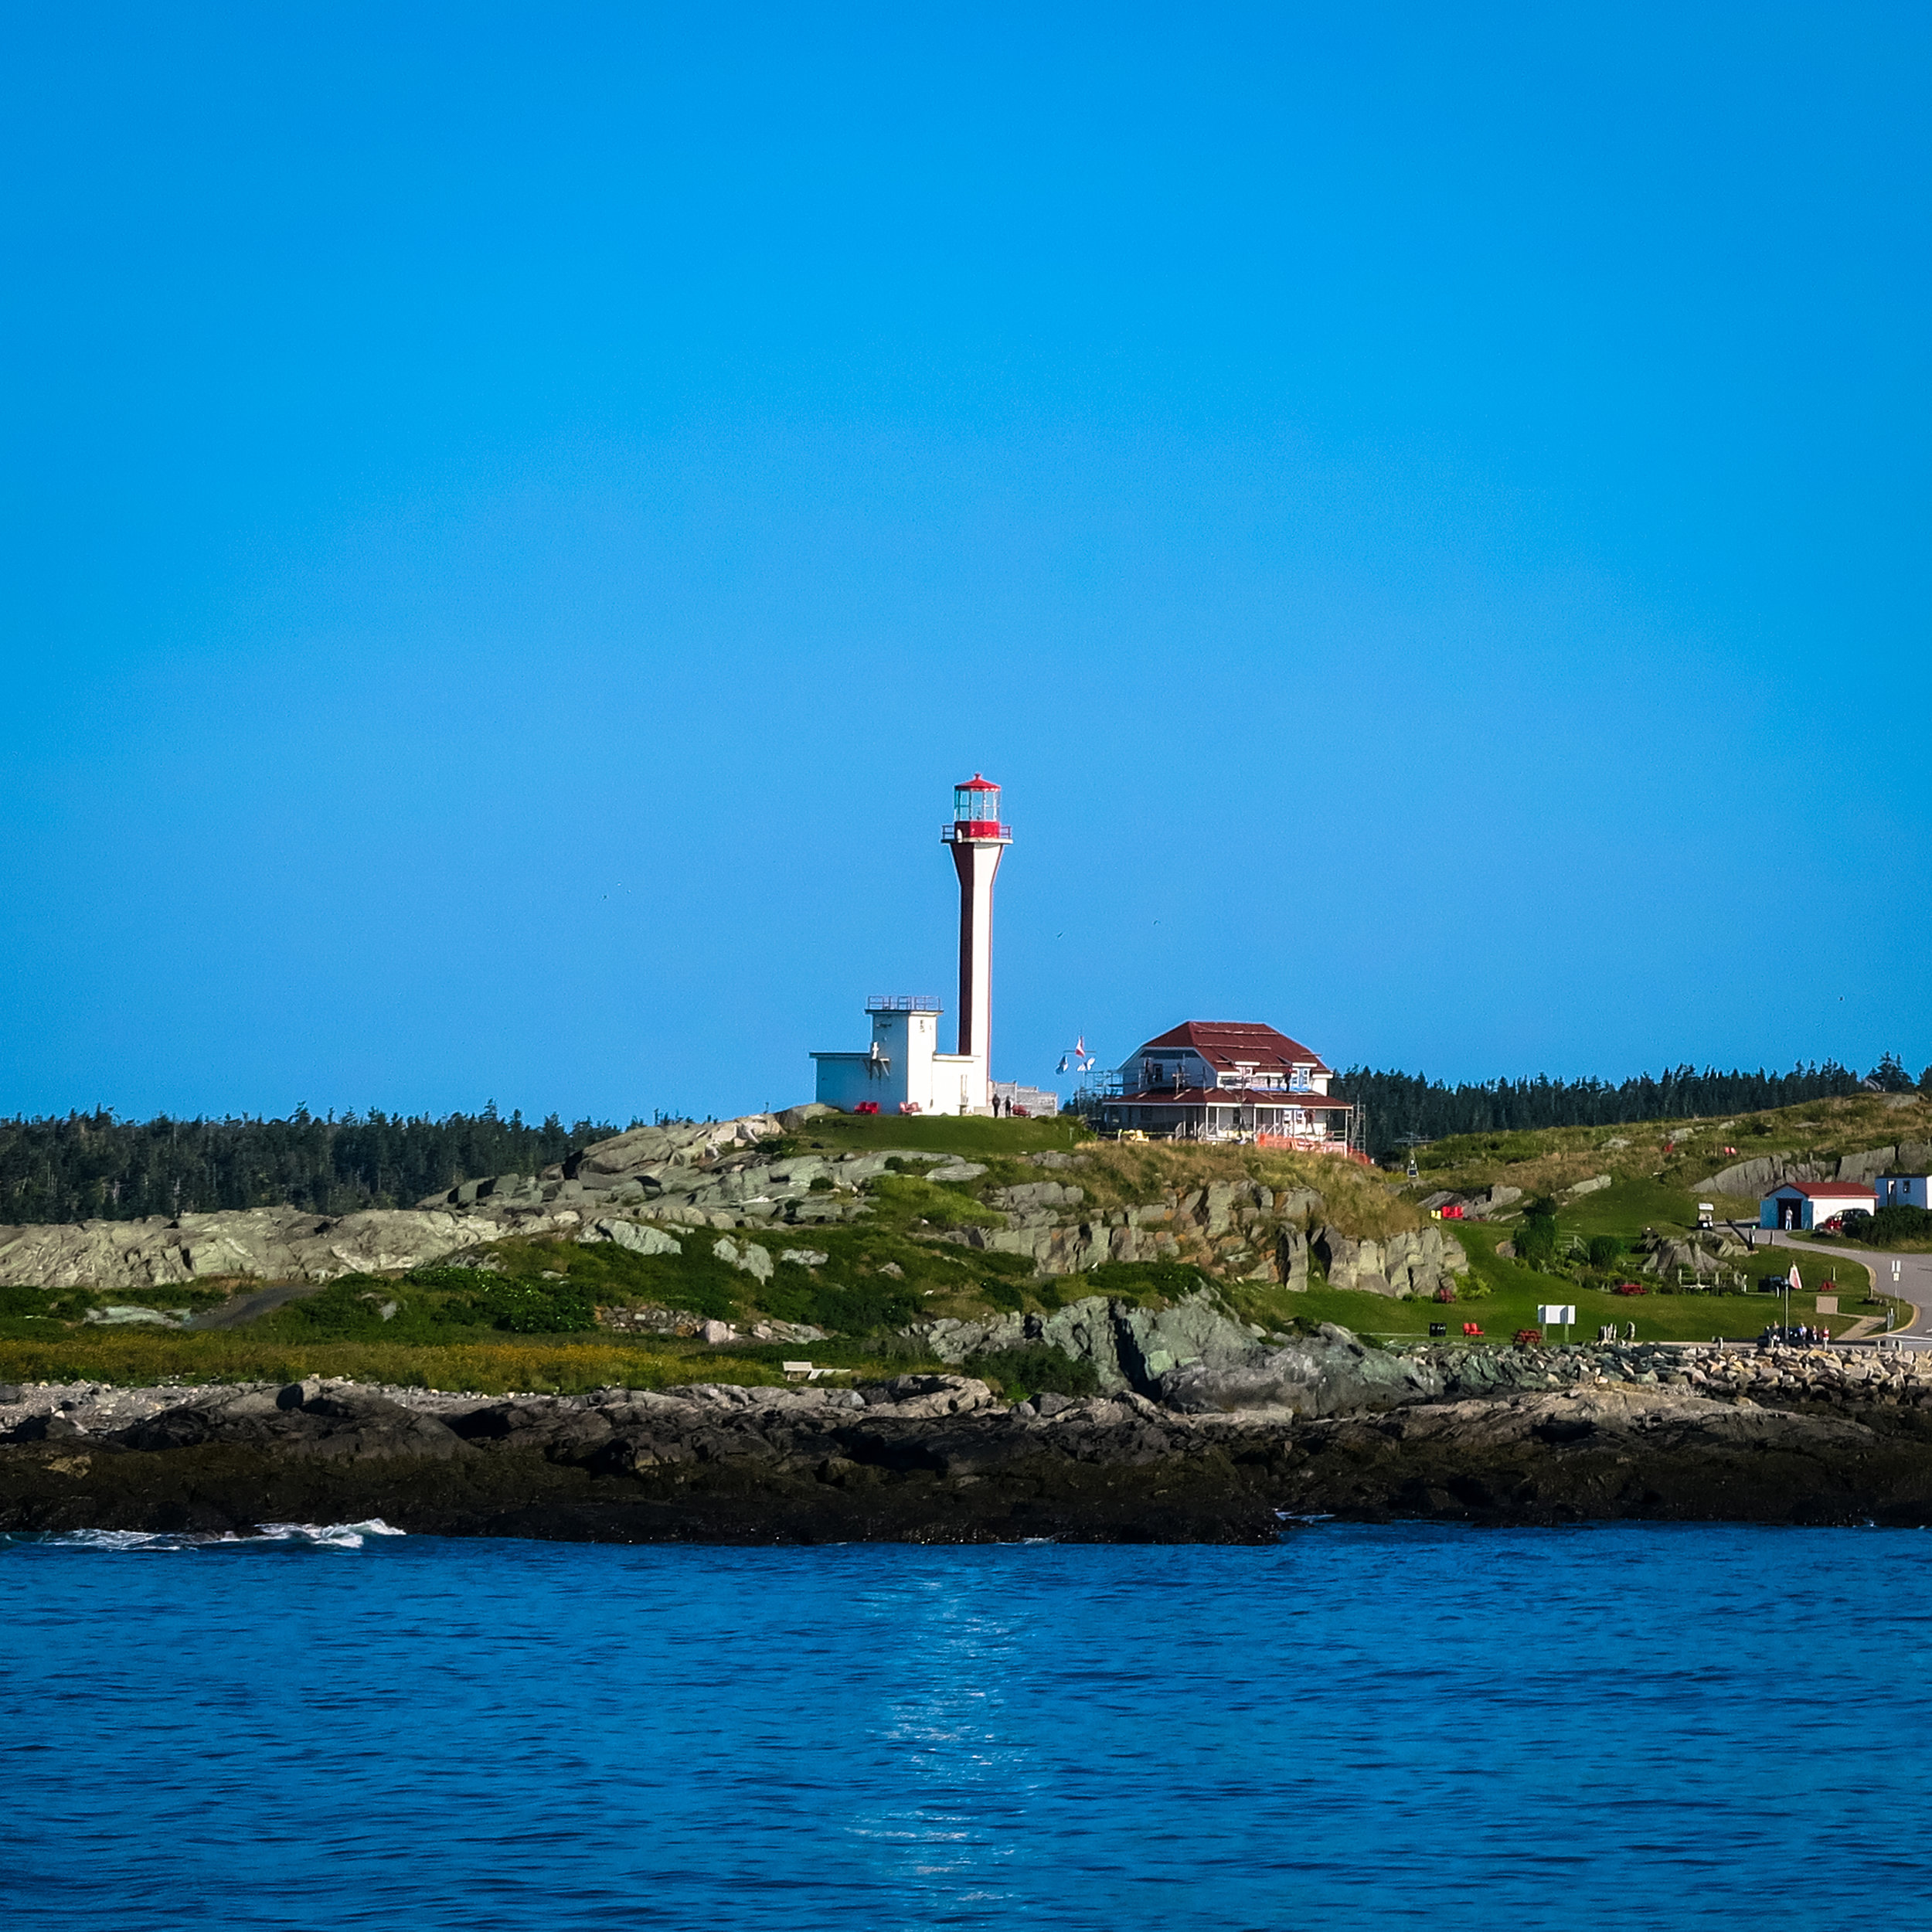 The Cape Forchu Lightstation, as seen from the CAT Ferry.